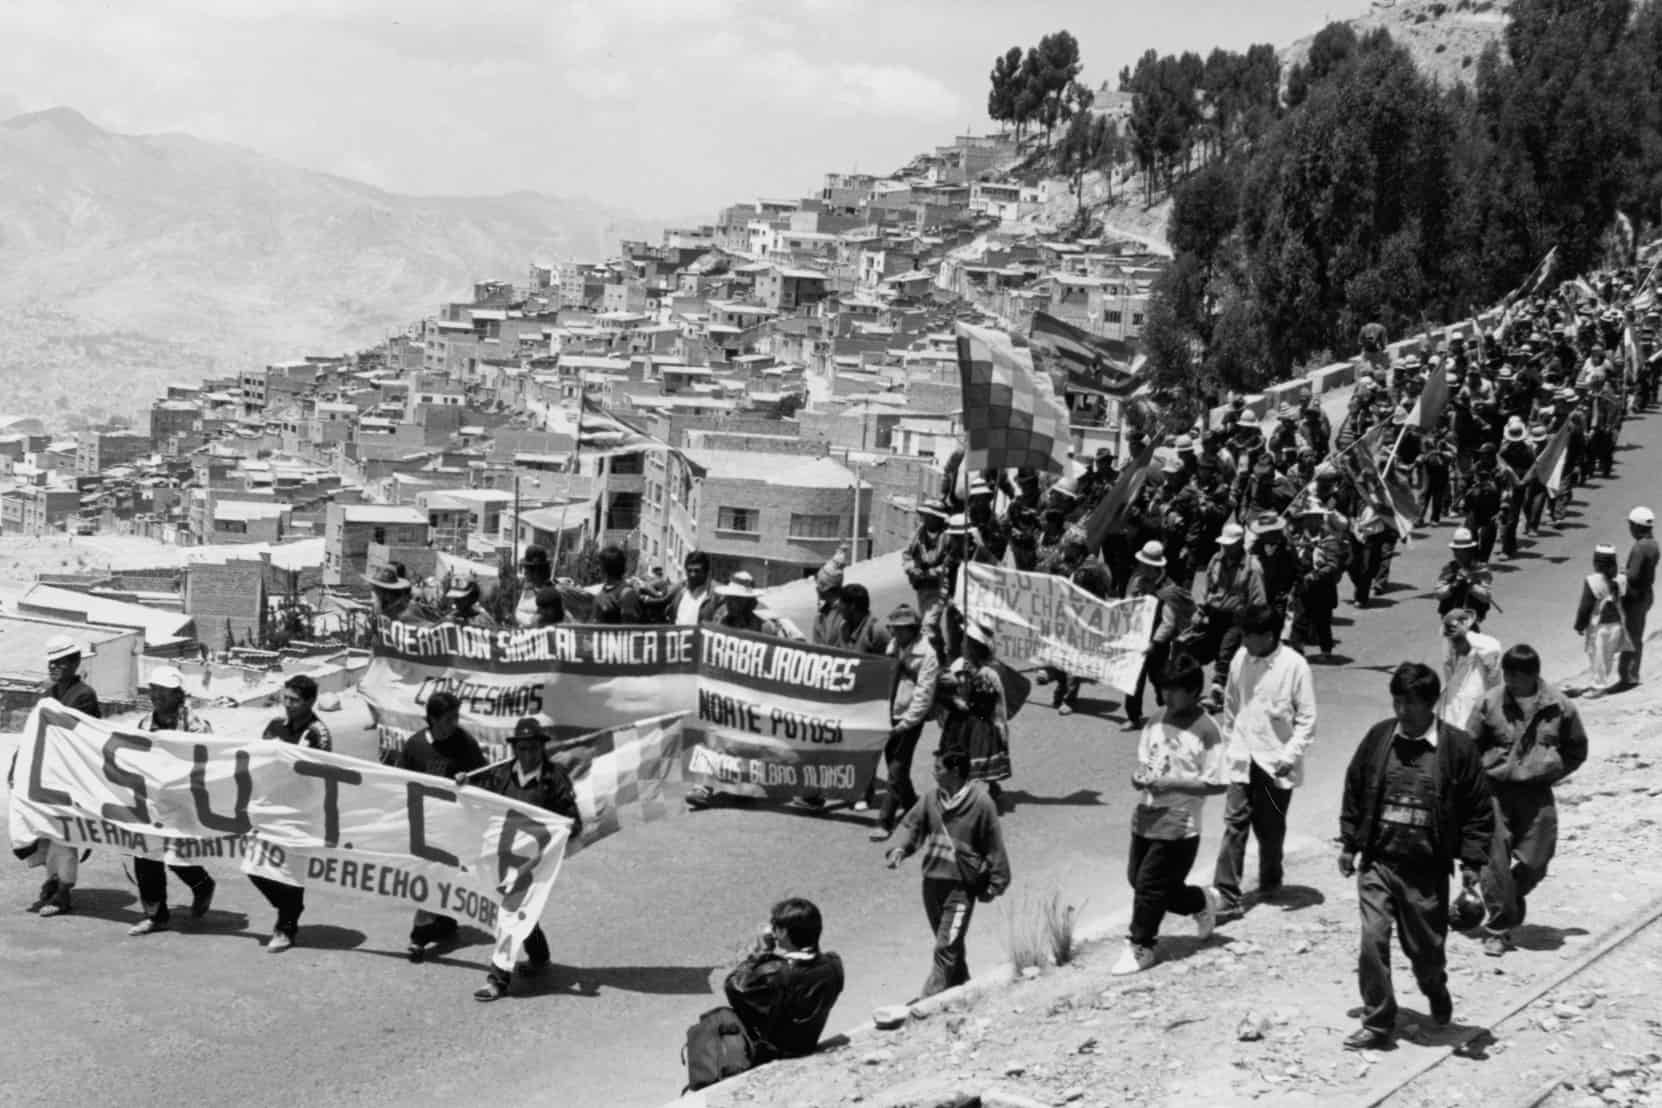 26 September 1996: The indigenous march for land and territory enters La Paz from El Alto, Bolivia, crossing the same terrain Túpac Katari's army used to seize La Paz in 1781. (Photograph by Museo Nacional de Etnografía y Folklore. Courtesy of the Archivo Central del Museo Nacional de Etnografía y Folklore.)